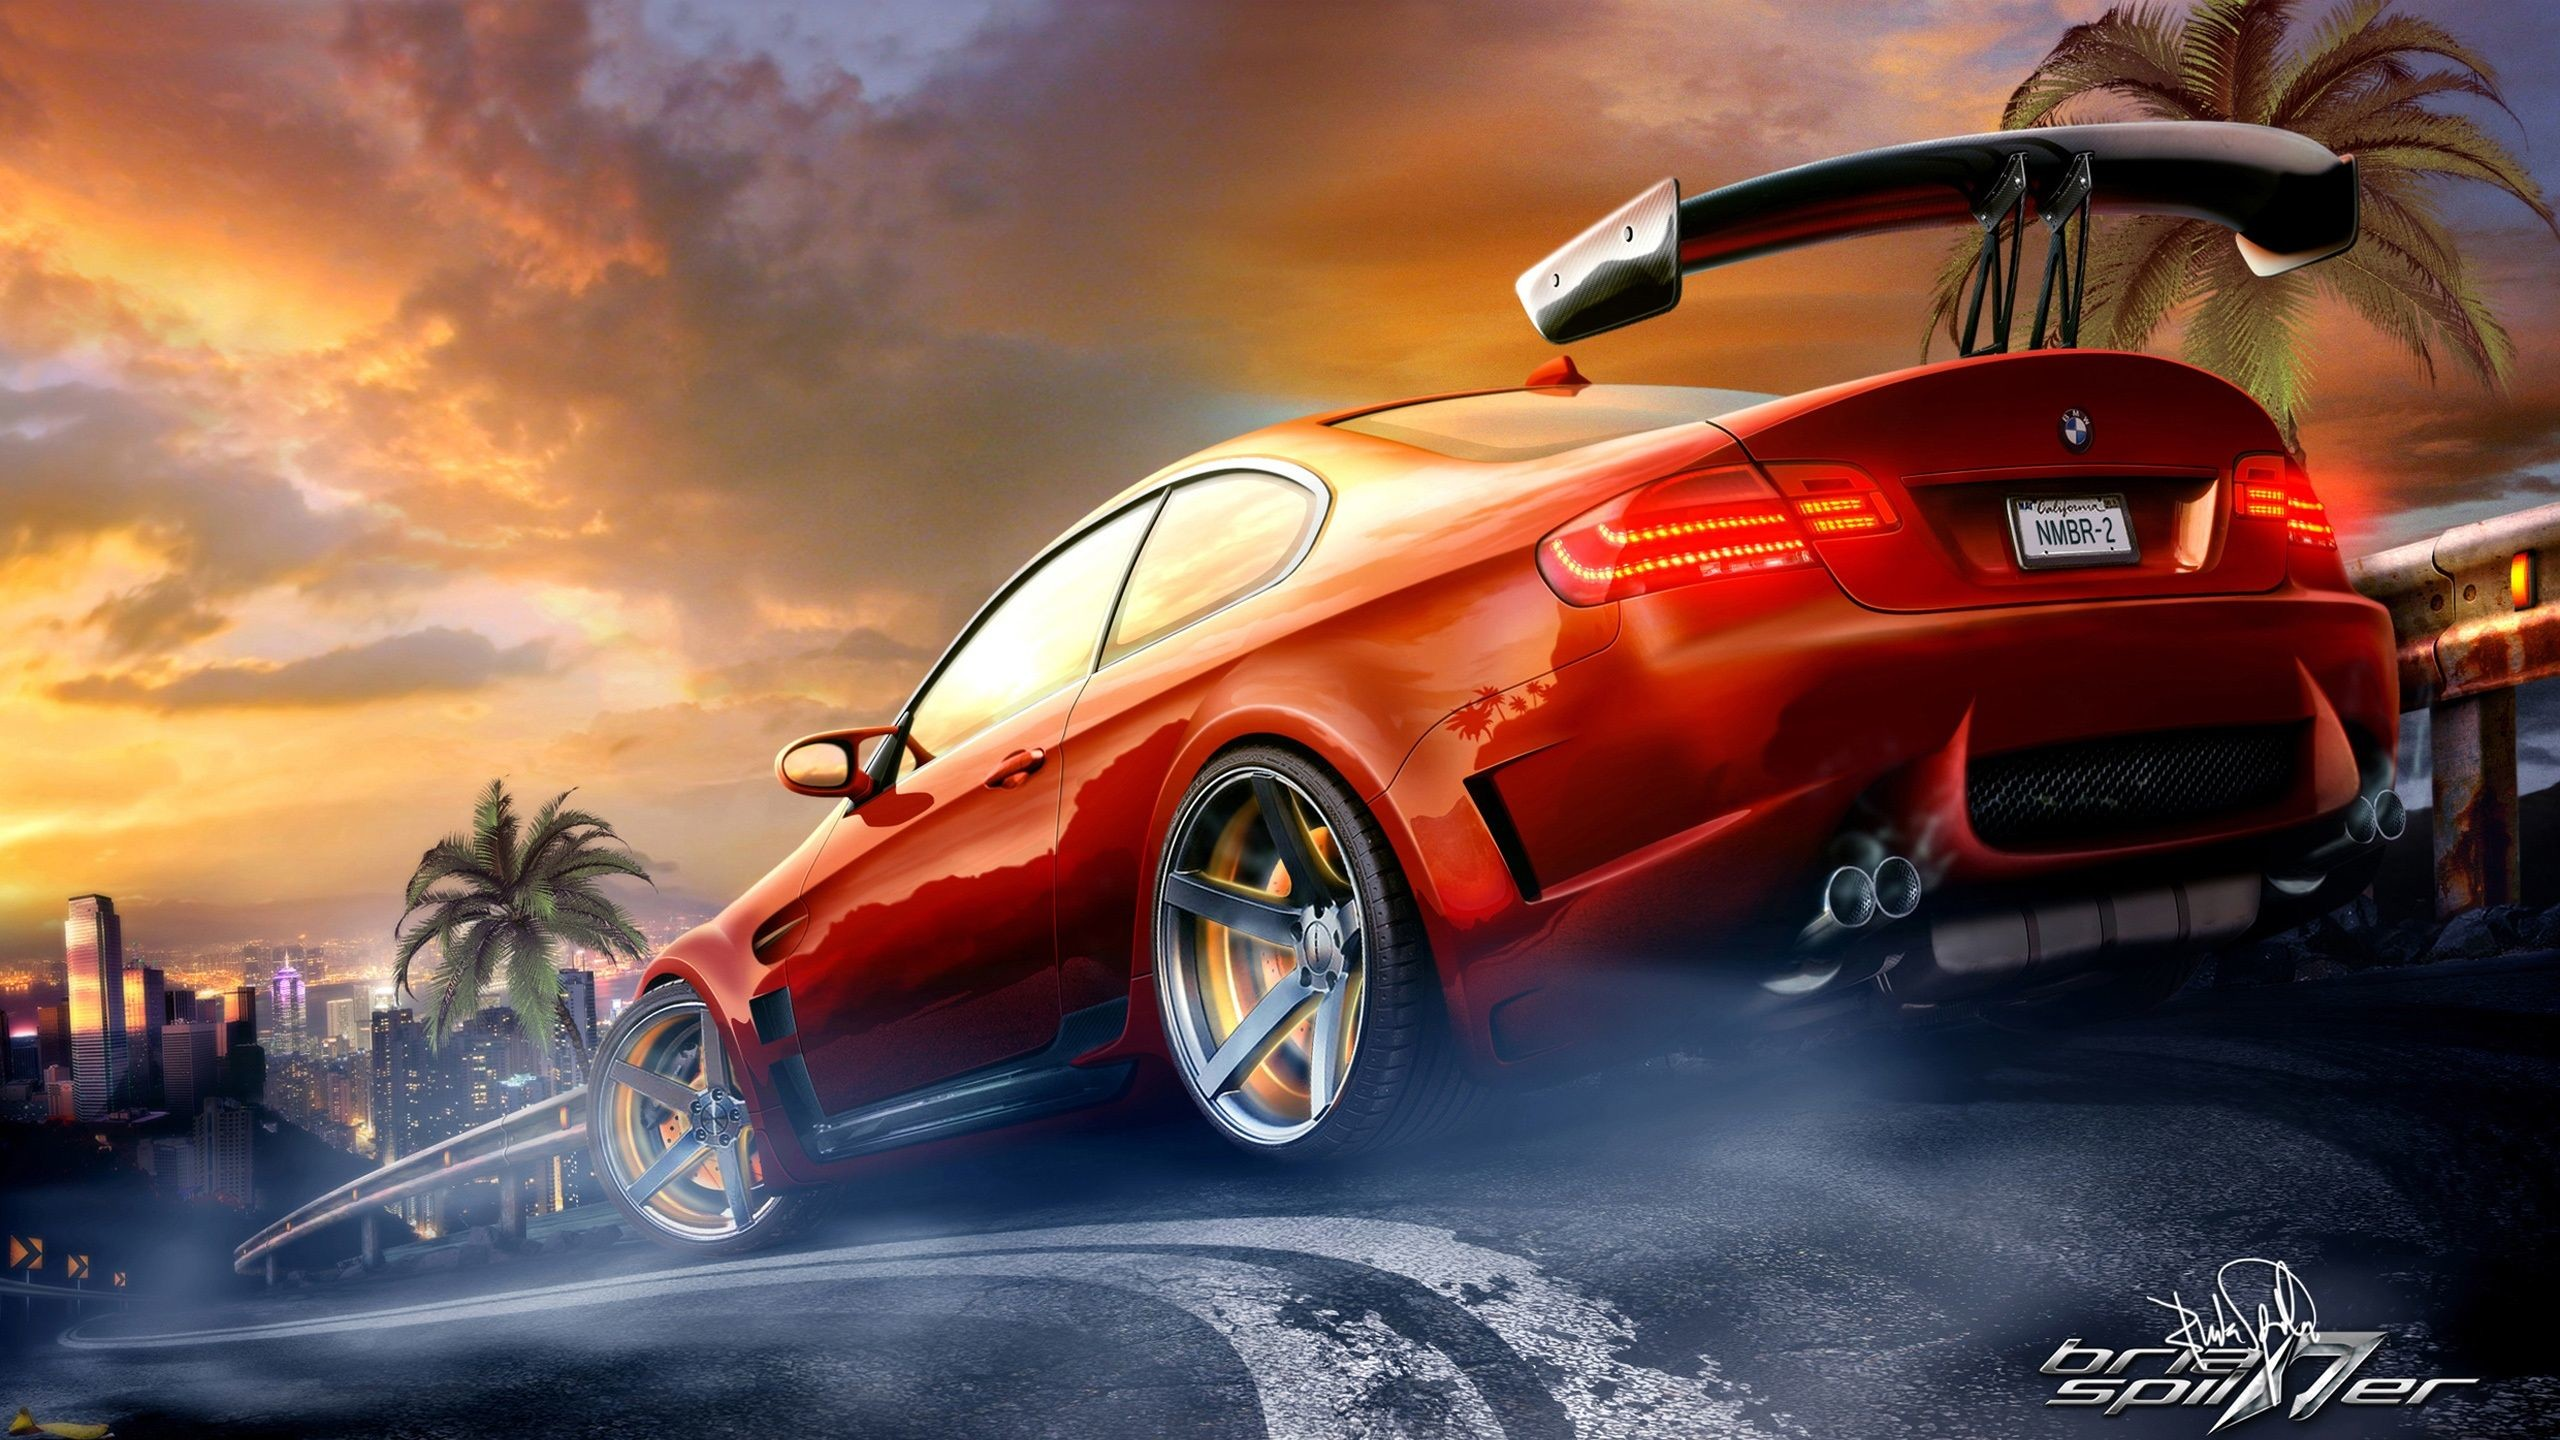 Racing Car Games Hd Wallpaper: Street Racing Cars Wallpapers ·①